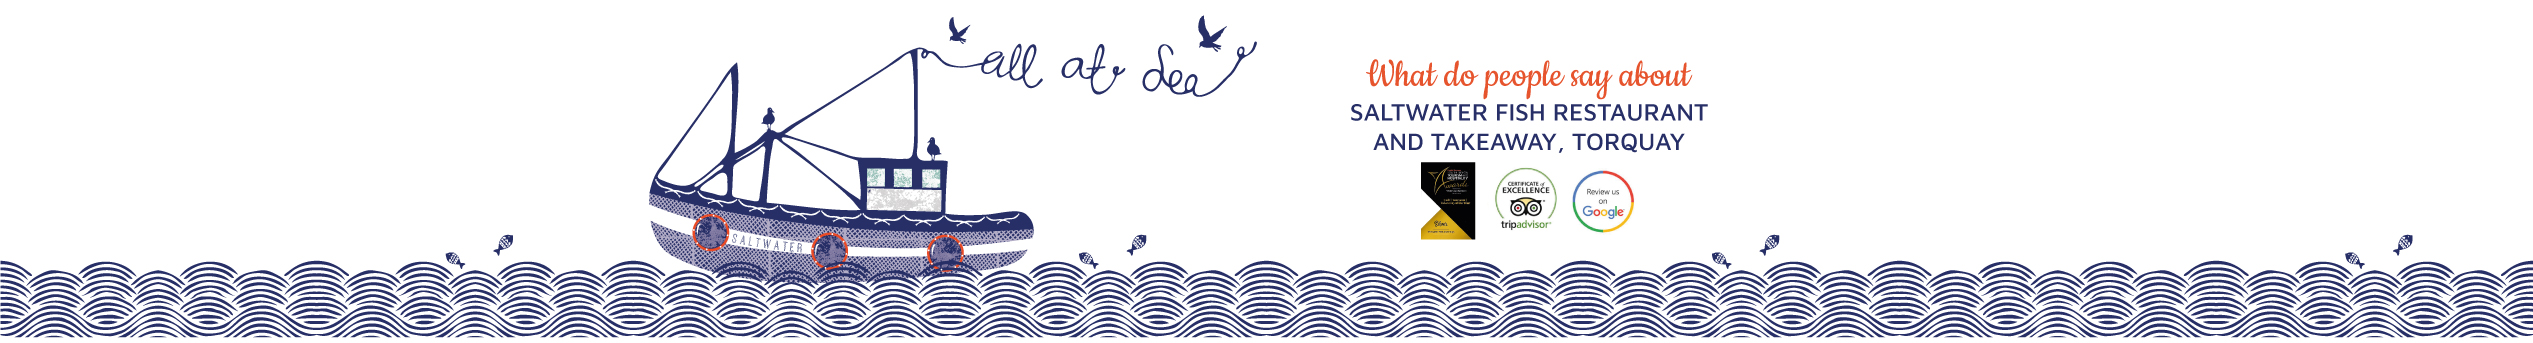 all-at-sea-boat-footer-saltwater-torquay-2533-reviews